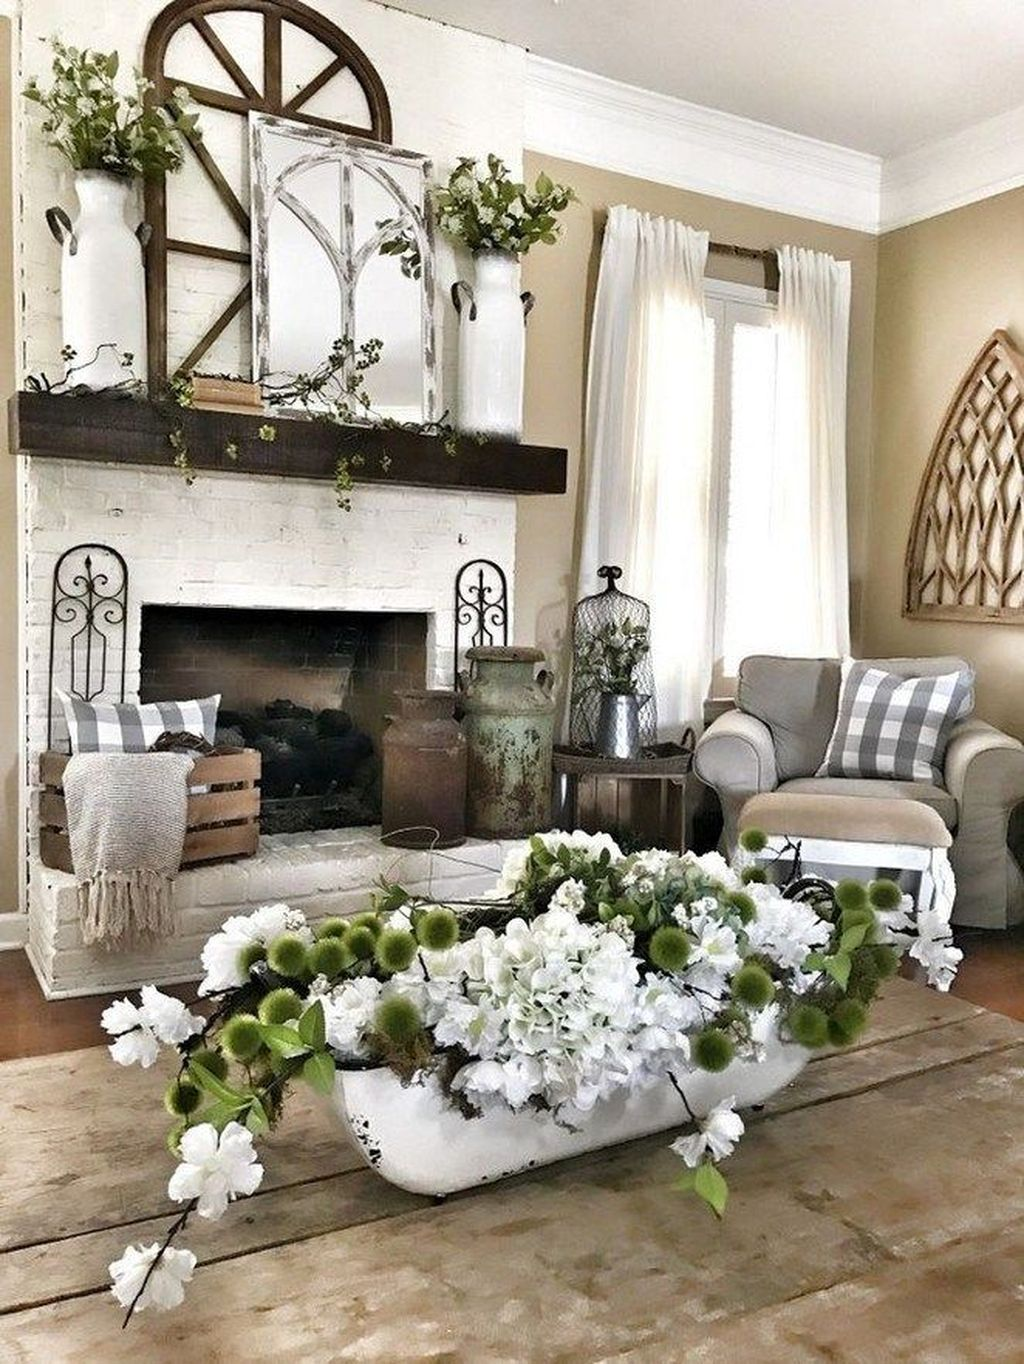 Admirable Farmhouse Living Room Decor Ideas 11